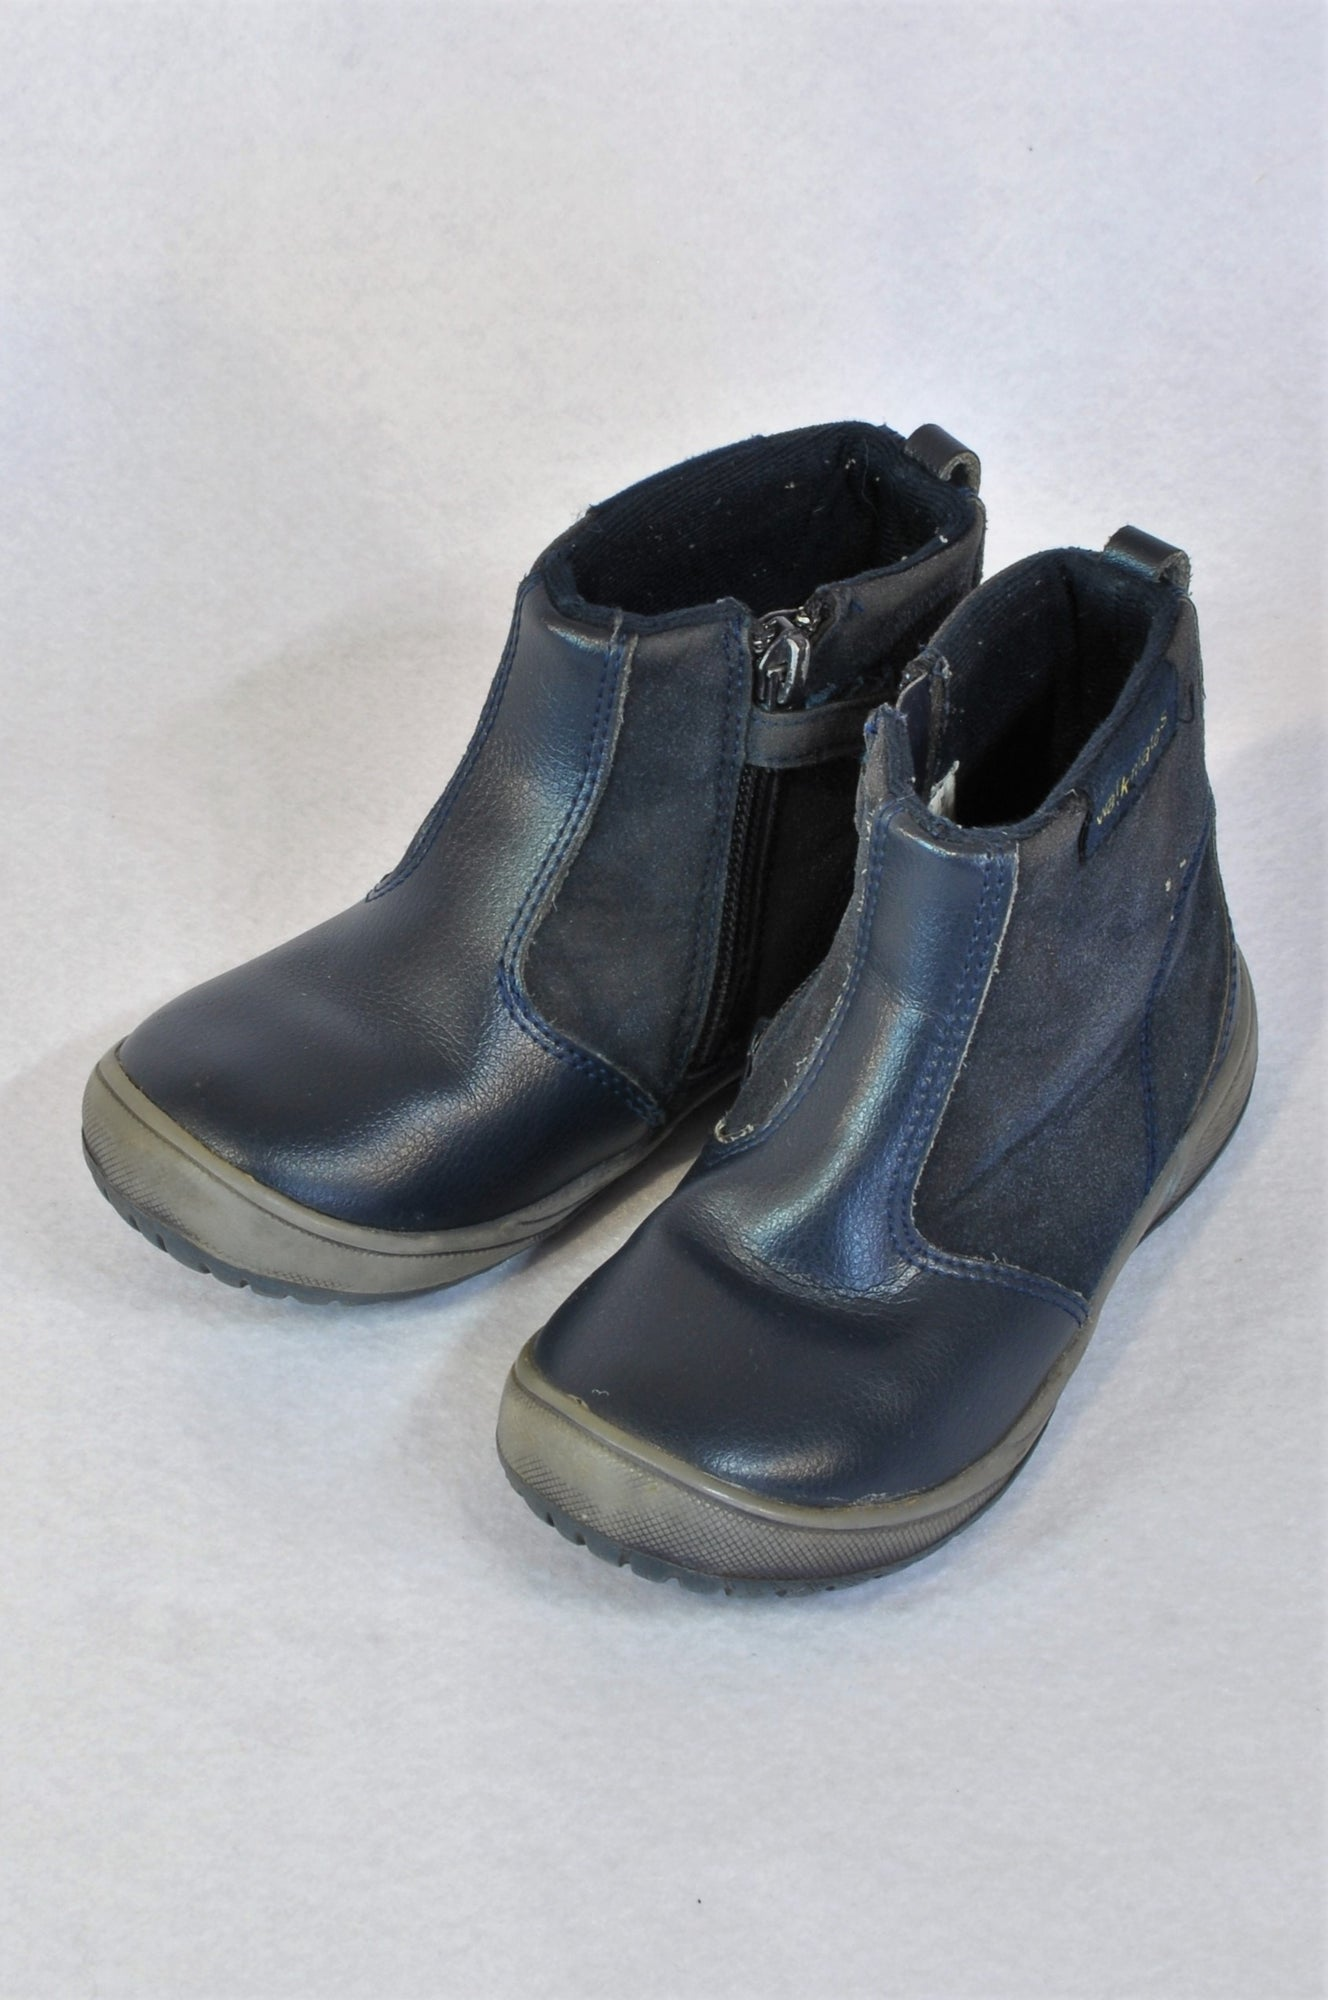 Woolworths Leather Size 10 Navy Blue Zipper Boots Boys 3-5 years